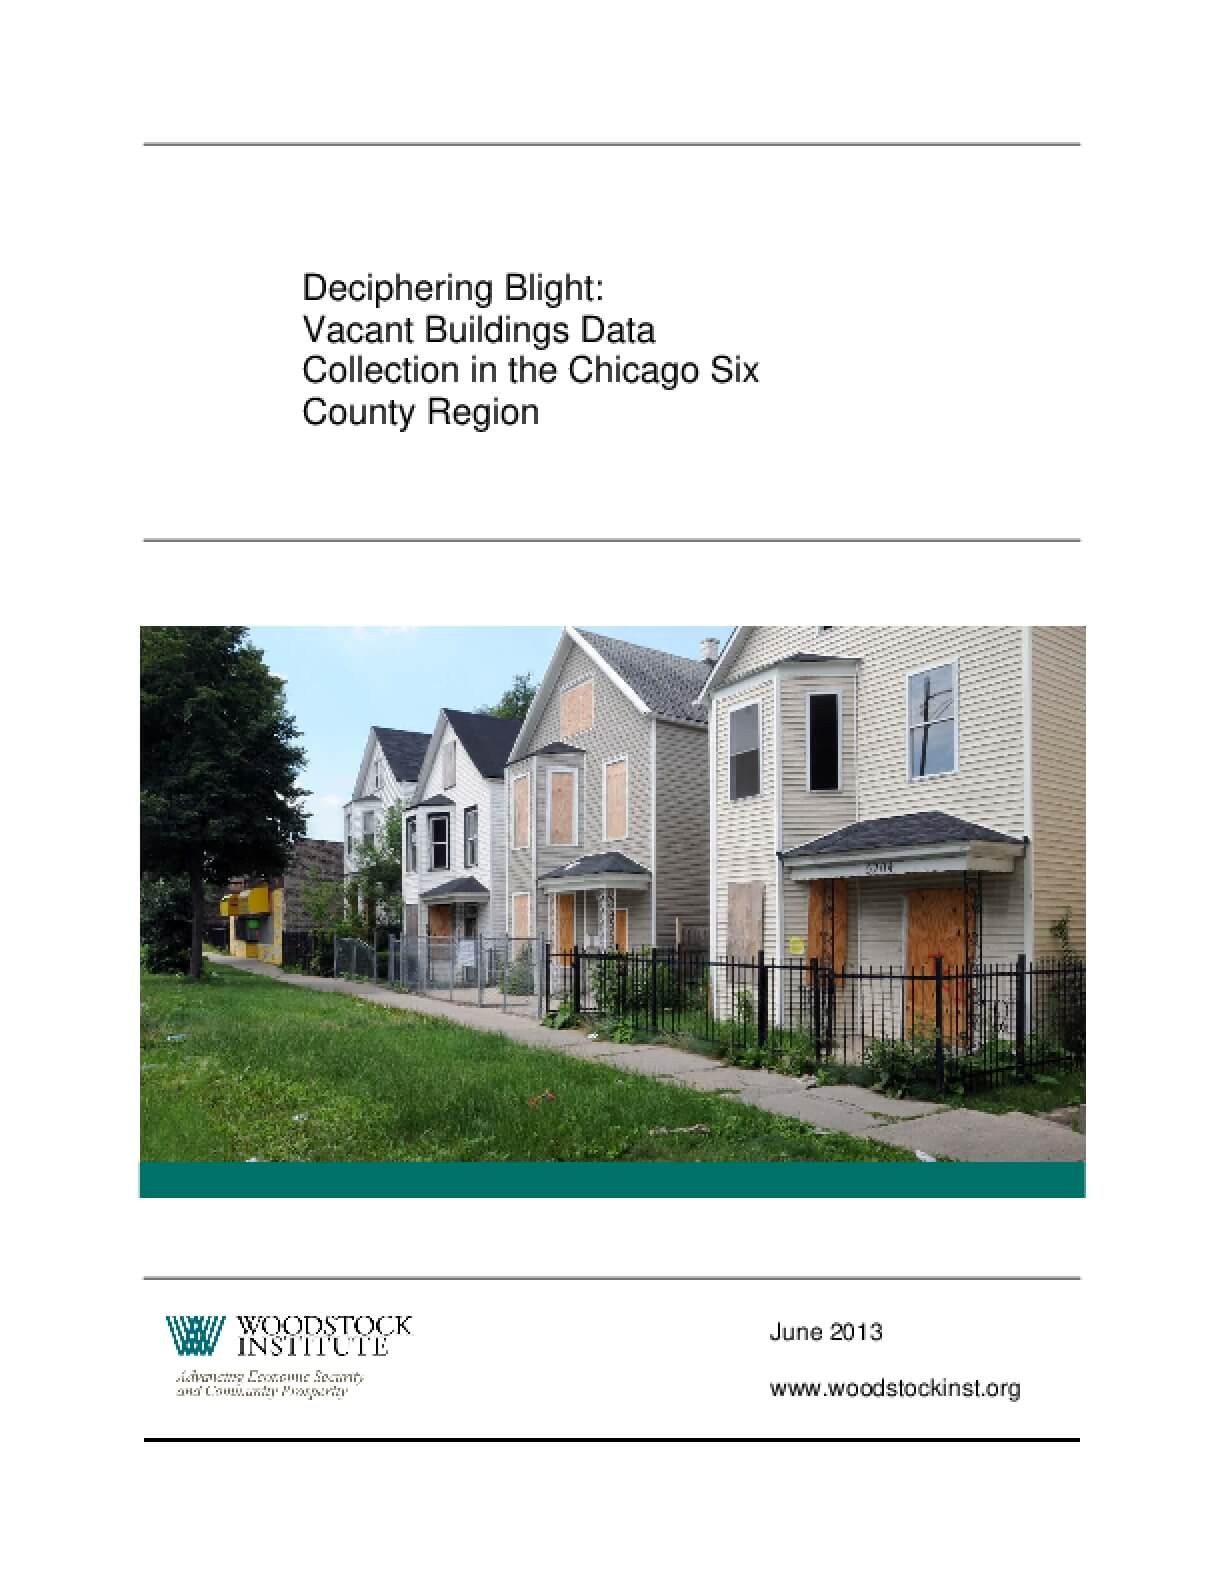 Deciphering Blight: Vacant Buildings Data Collection in the Chicago Six County Region